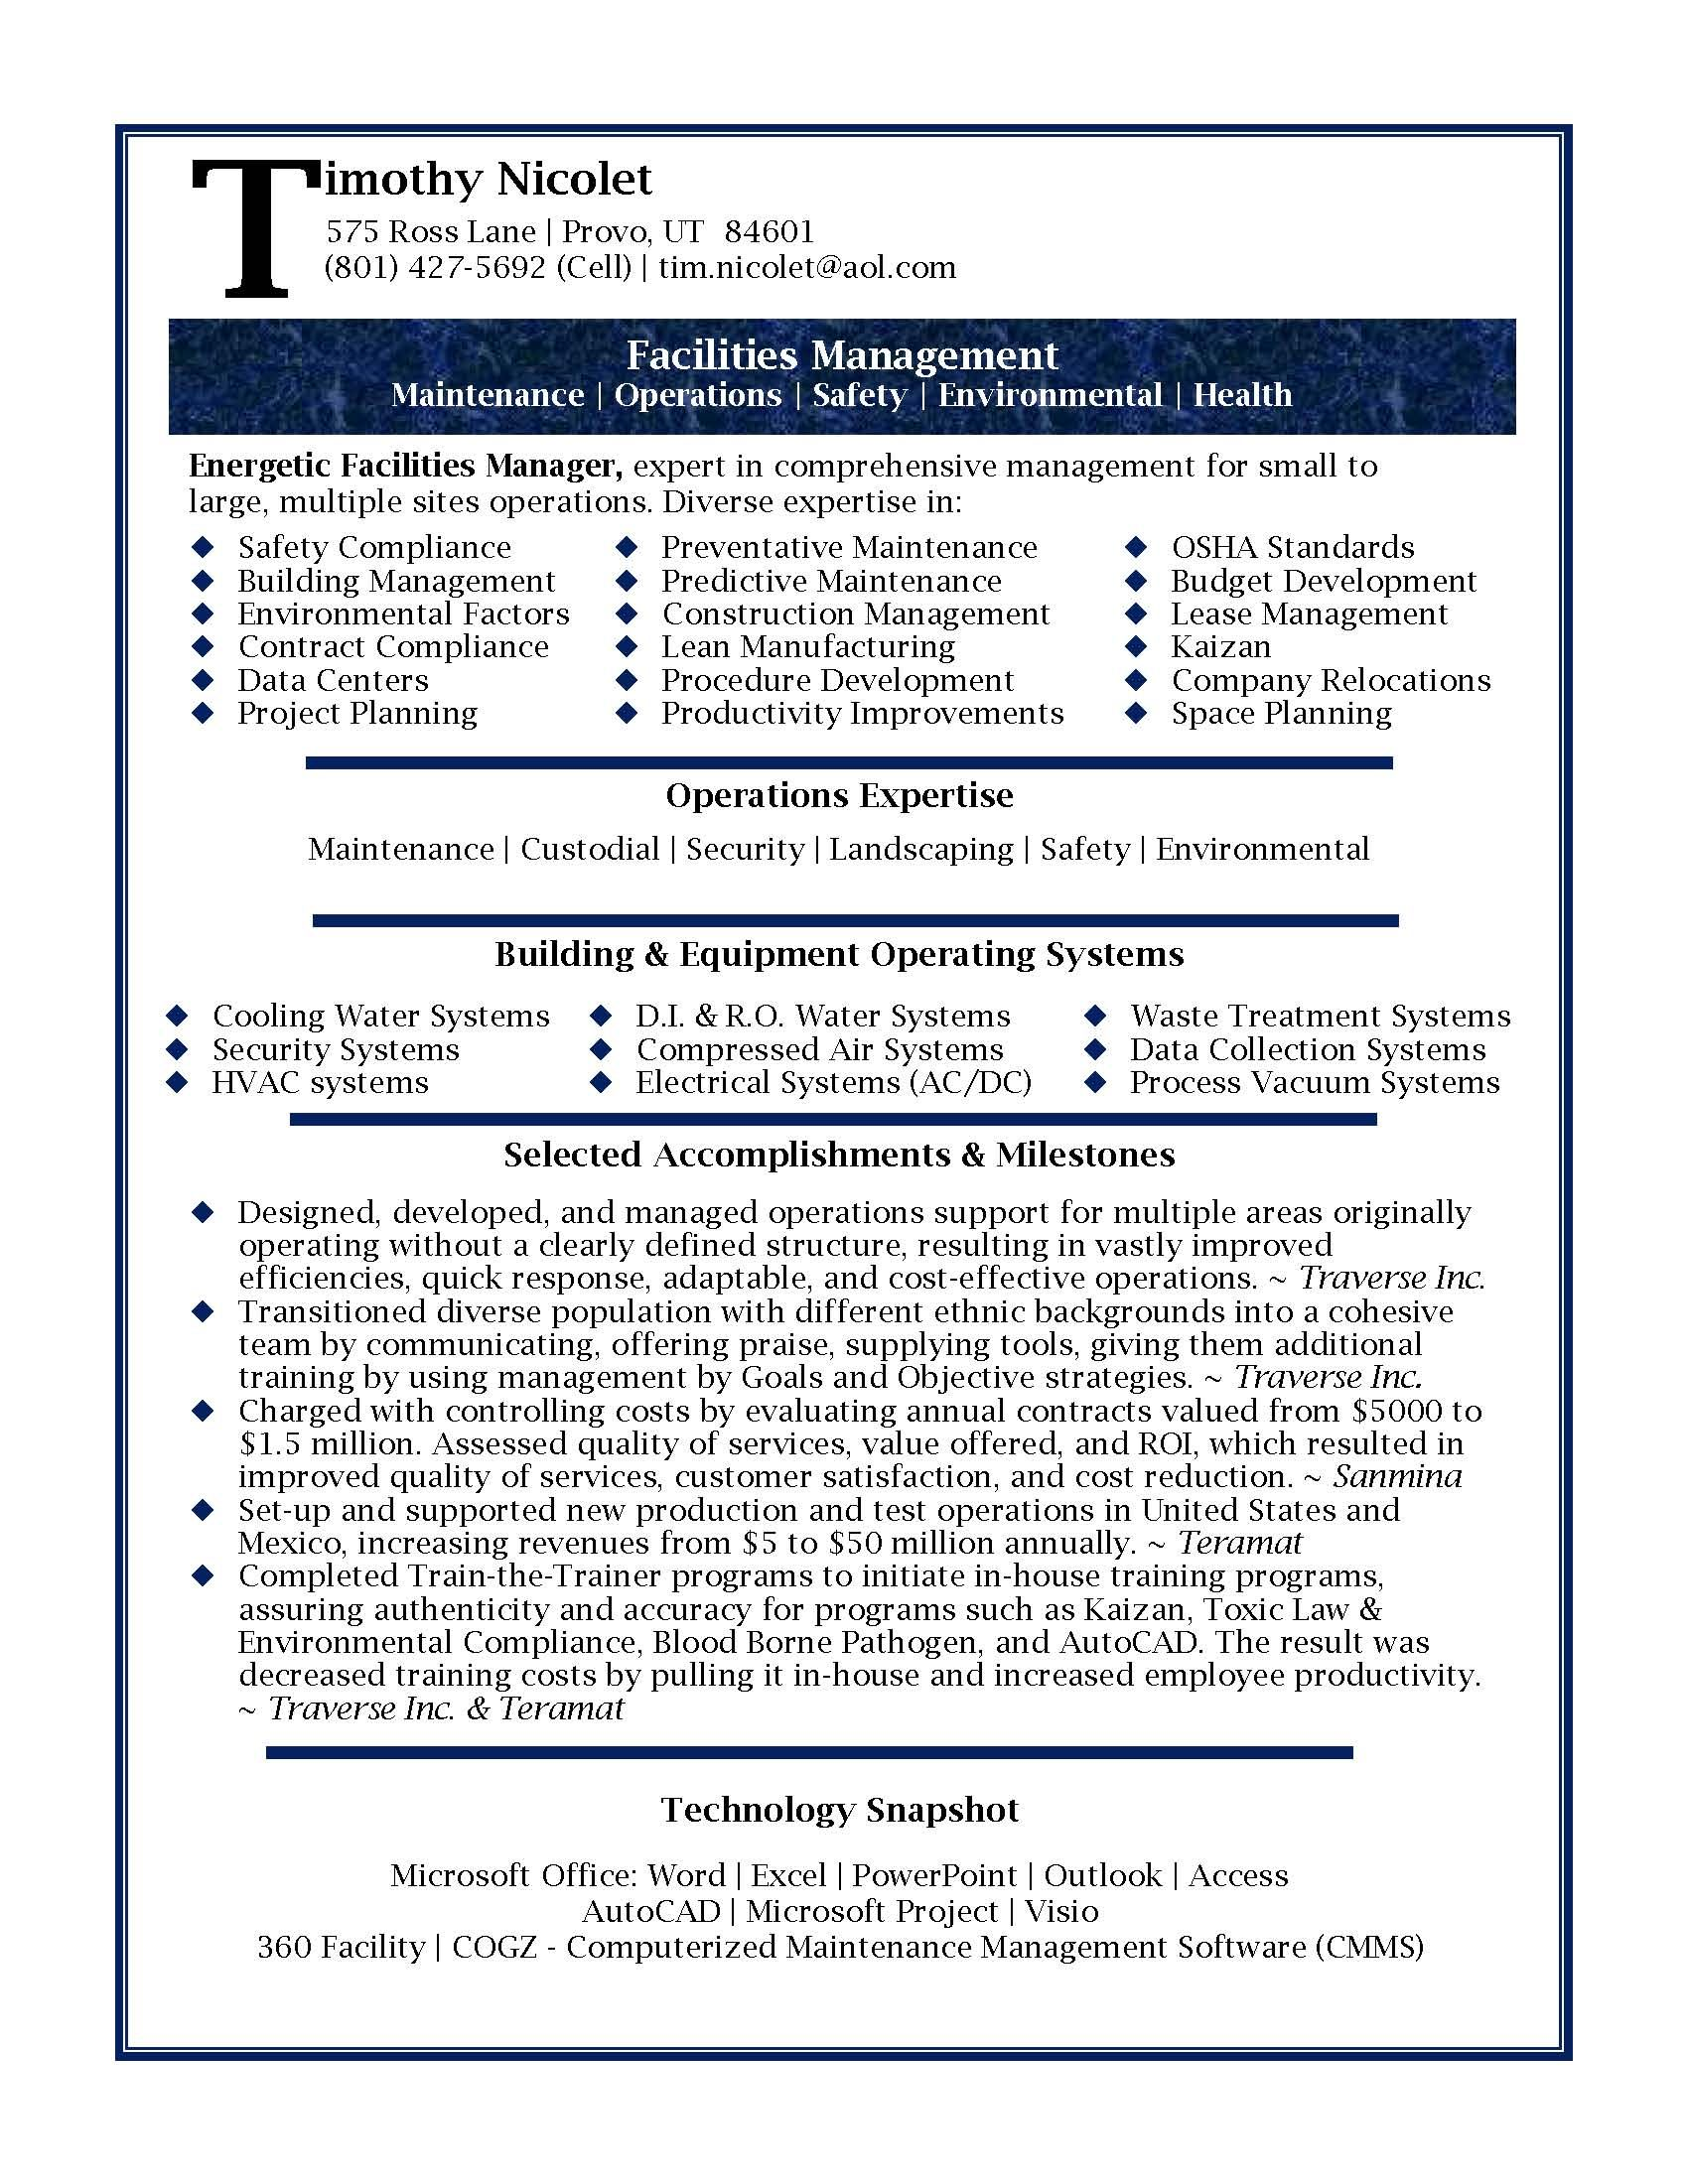 resume samples professional facilities manager resume sample - Professional It Resume Samples